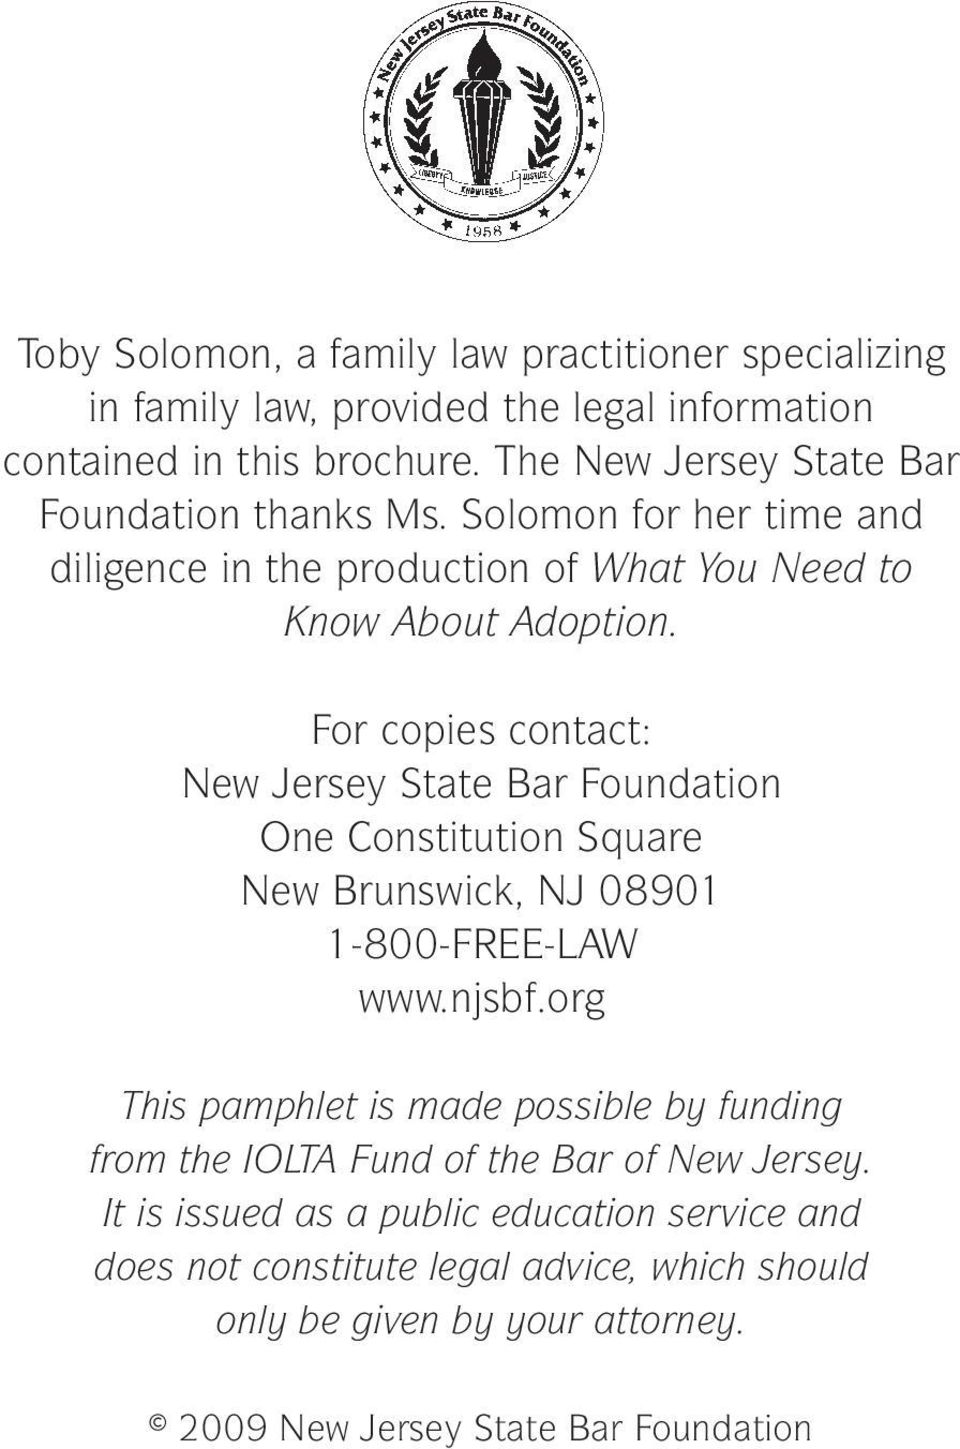 For copies contact: New Jersey State Bar Foundation One Constitution Square New Brunswick, NJ 08901 1-800-FREE-LAW www.njsbf.